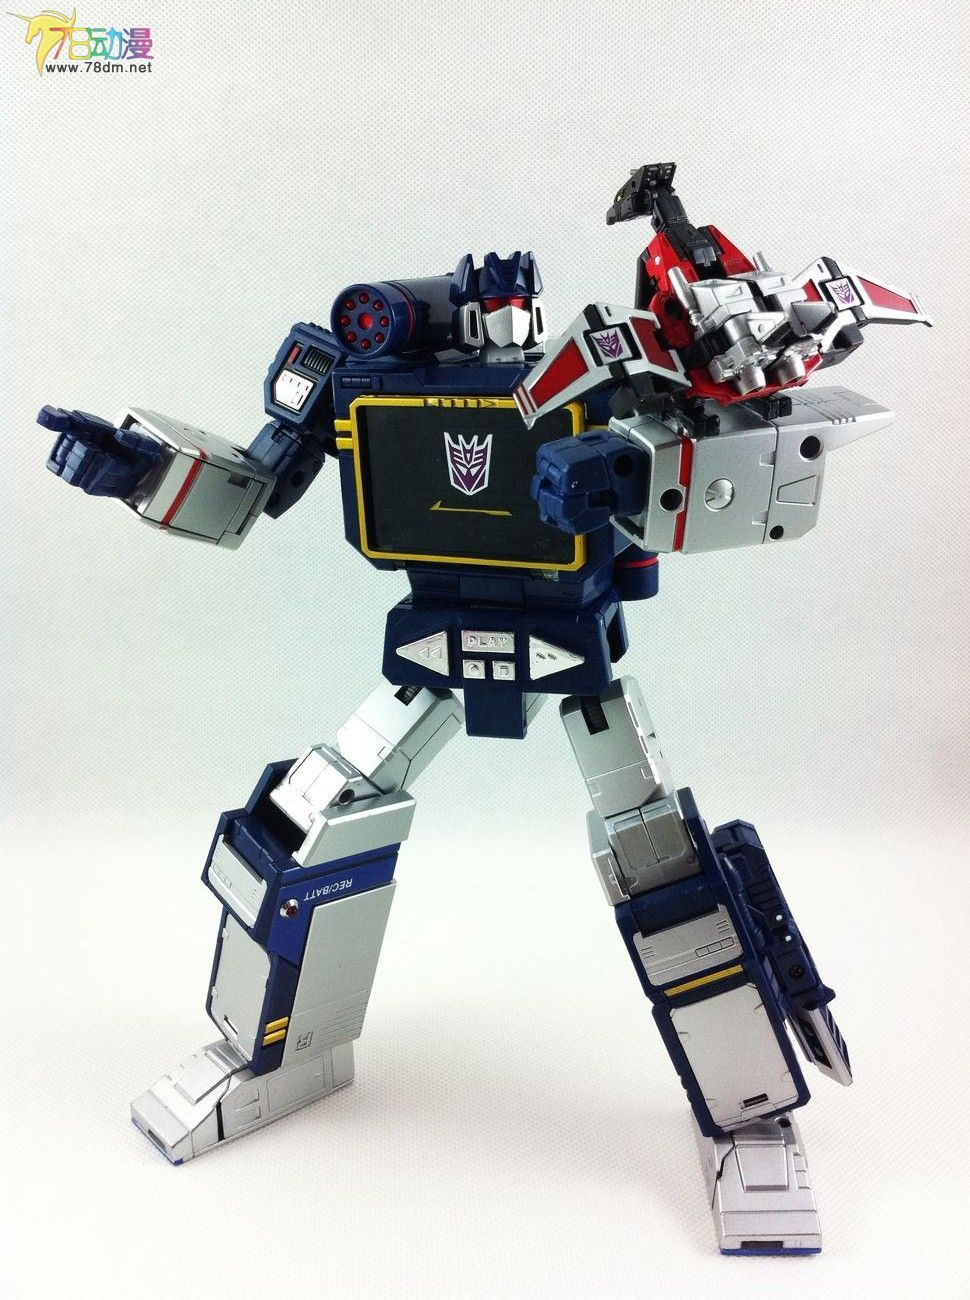 Re: In-Hand Images: Takara Tomy Transformers Masterpiece MP-13 Soundwave